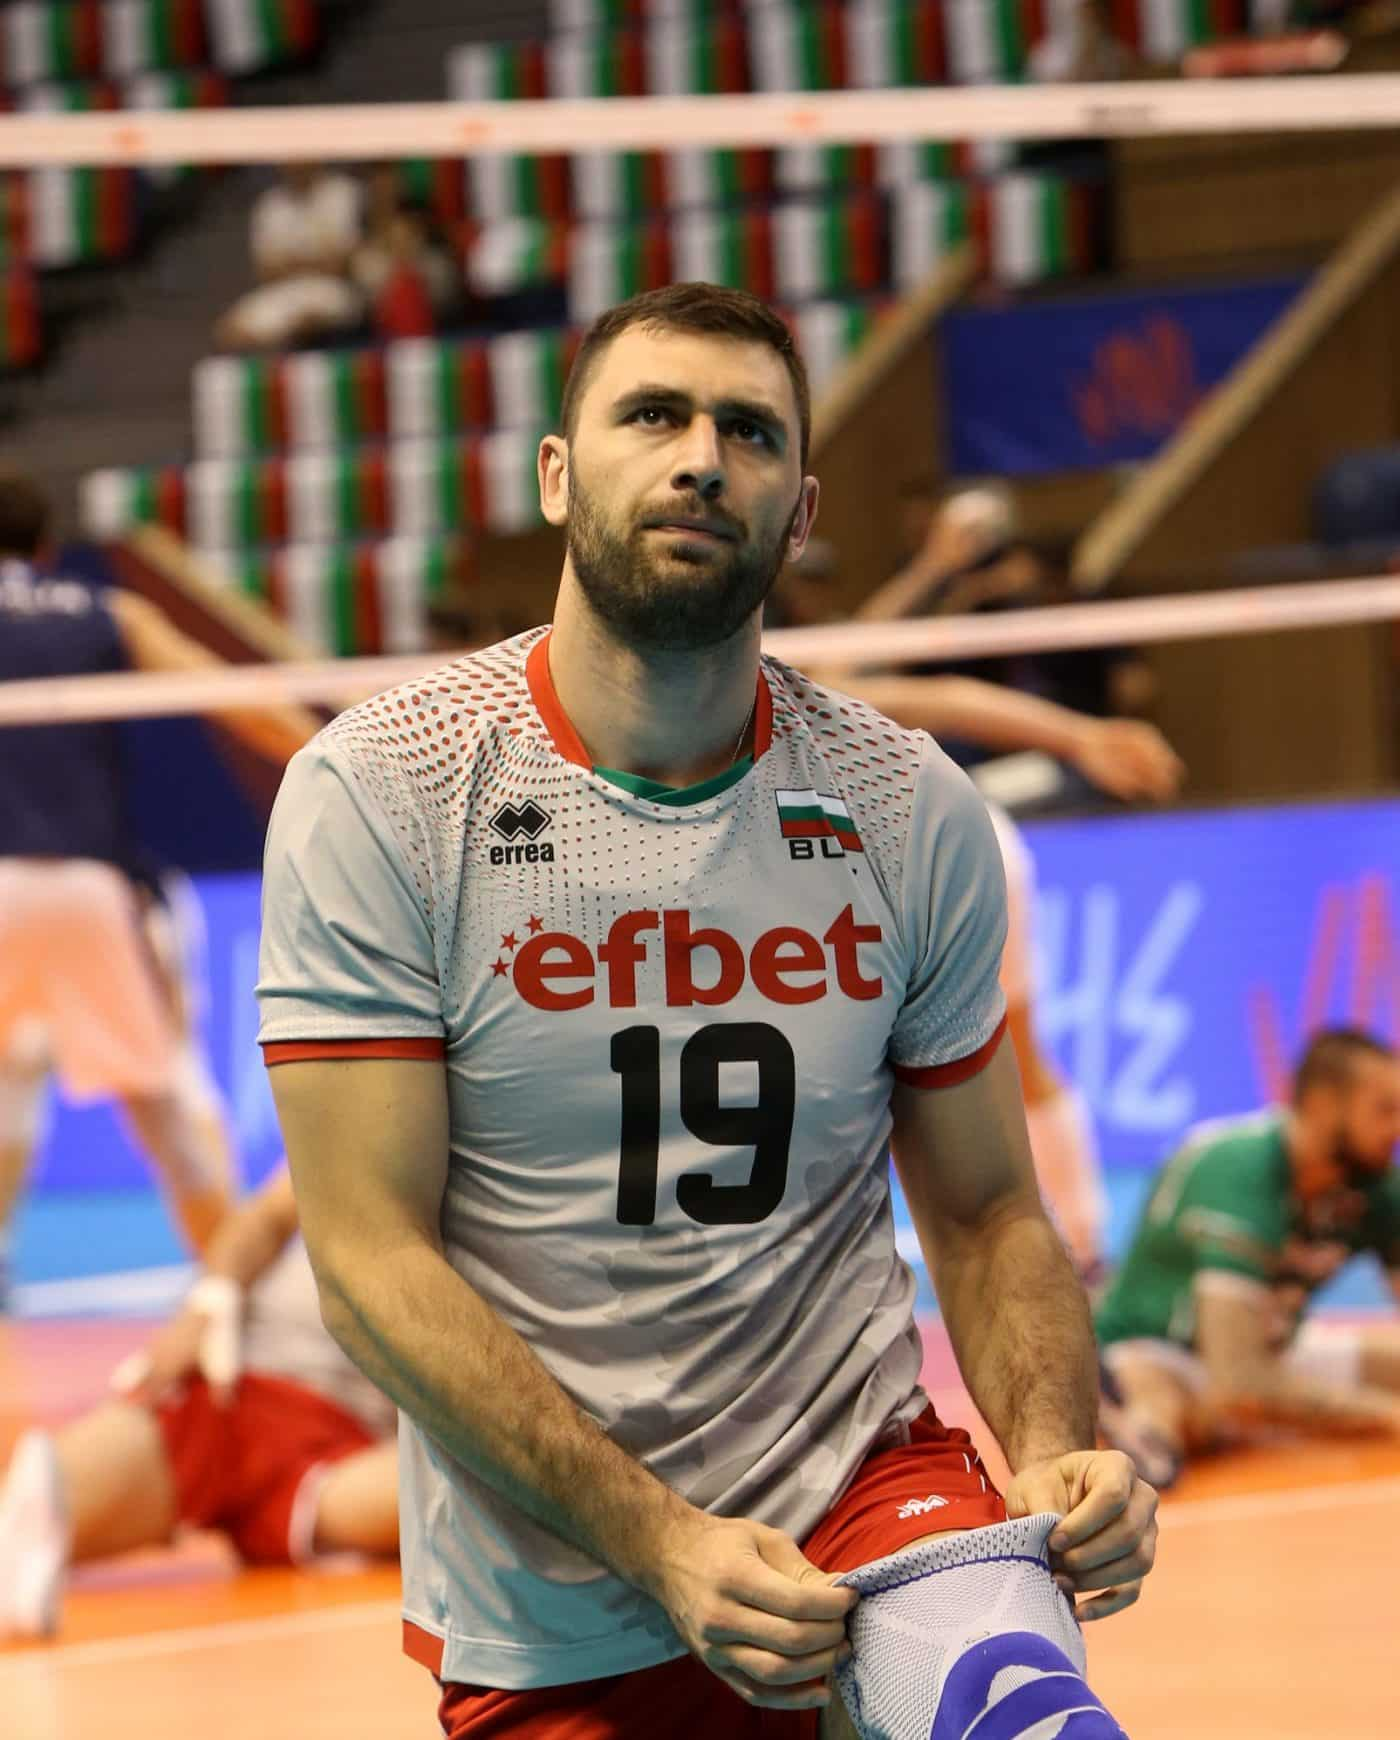 maillots-euro-2019-volley-ball-bulgarie-errea-9